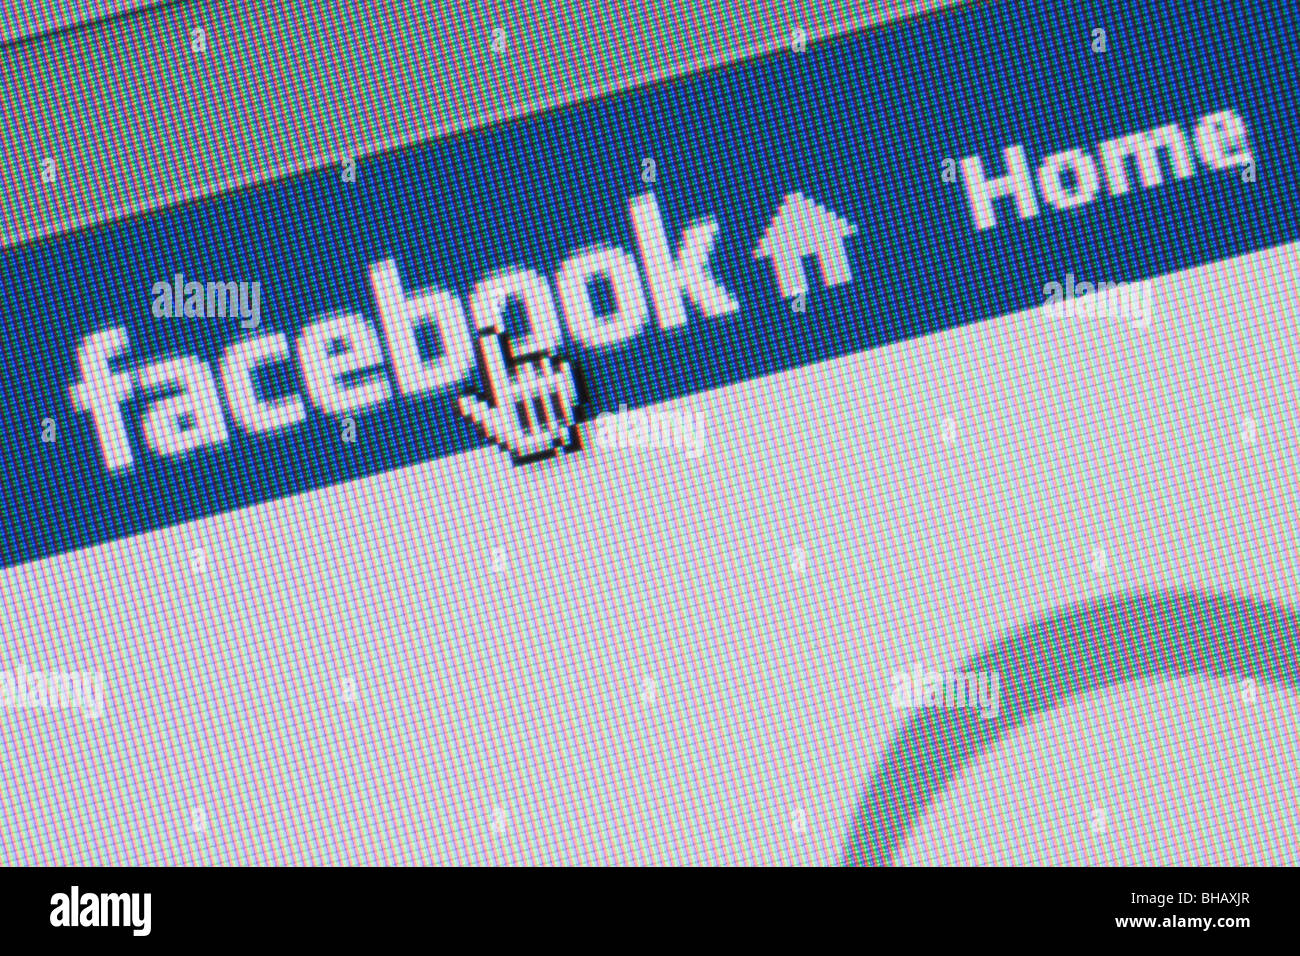 Close-up screenshot of Facebook social networking website logo on home page with cursor pointing. England UK Britain - Stock Image